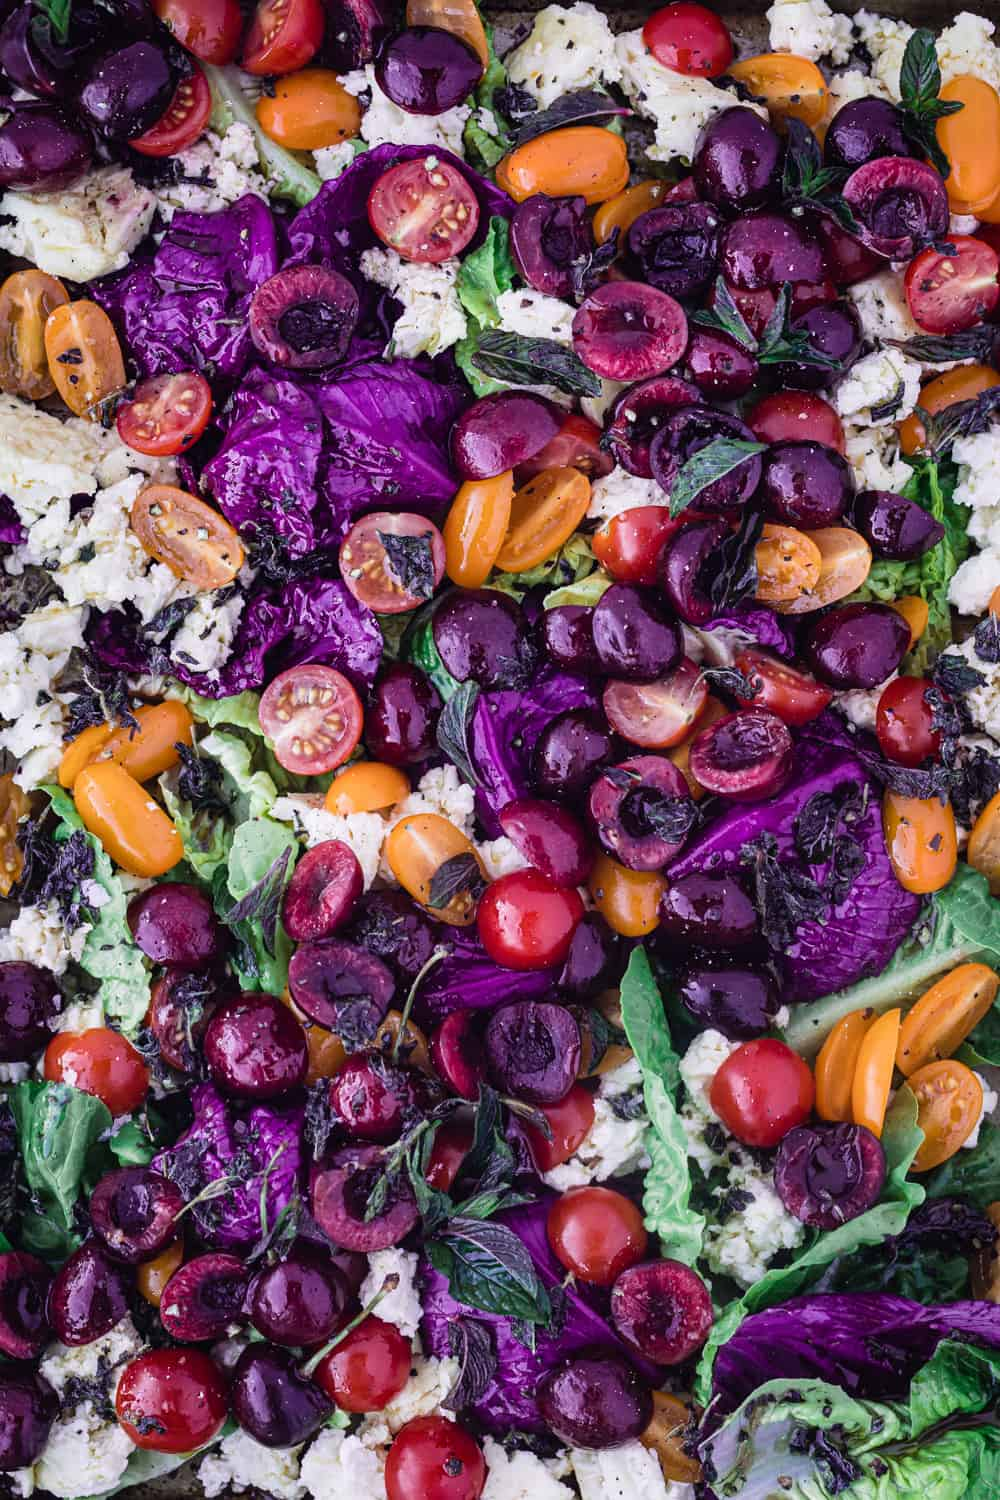 Cherry & Cherry Tomato Summer Salad with purple cabbage, greens and baked feta.